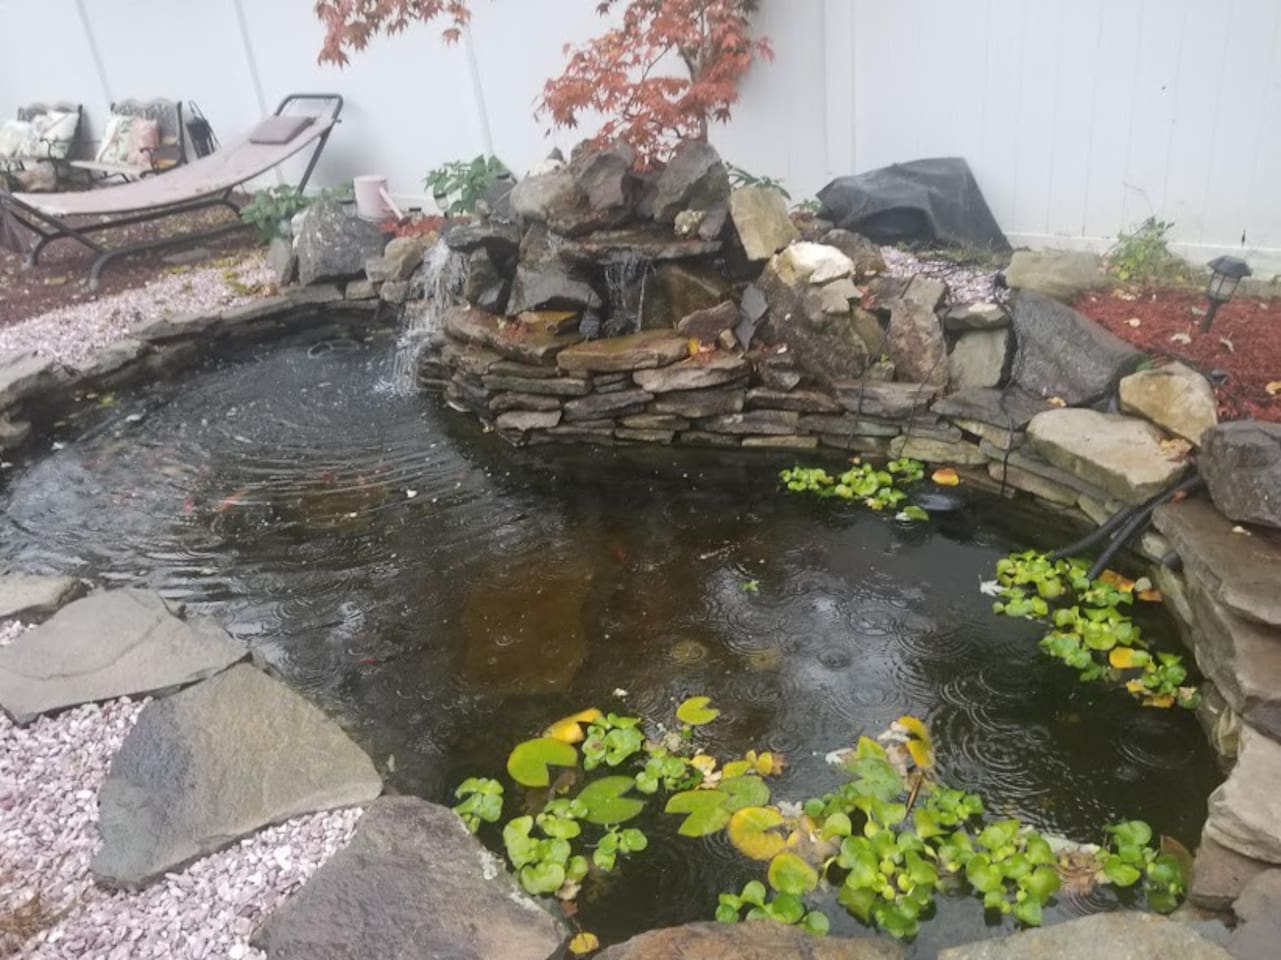 Sit and relax by our lovely Koi pond.  This pond features about 20 fish of many colors